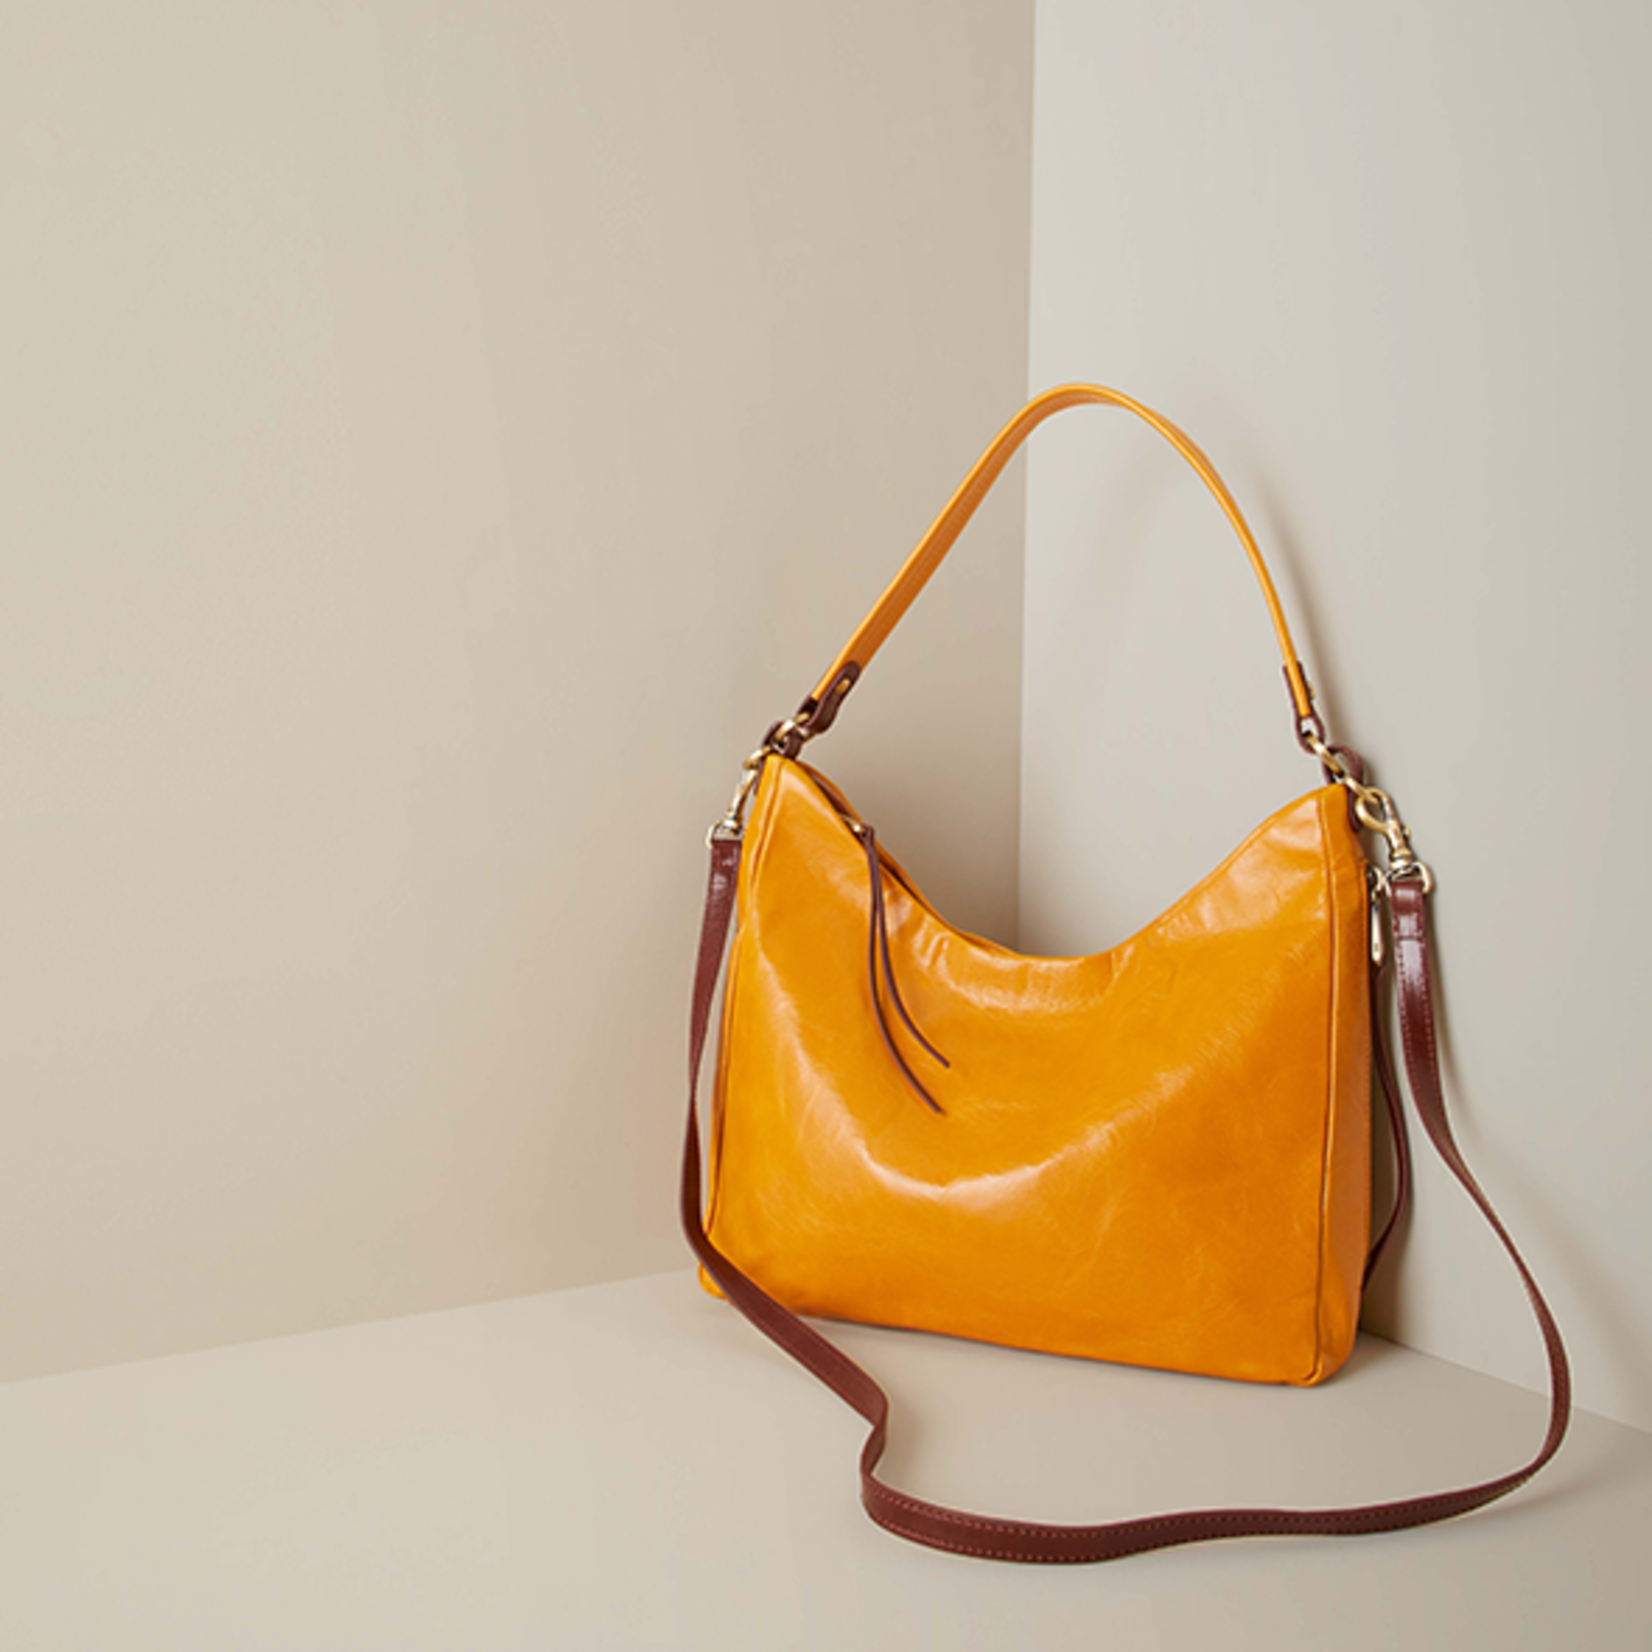 HOBO Delilah Mustard Vintage Leather Handbag